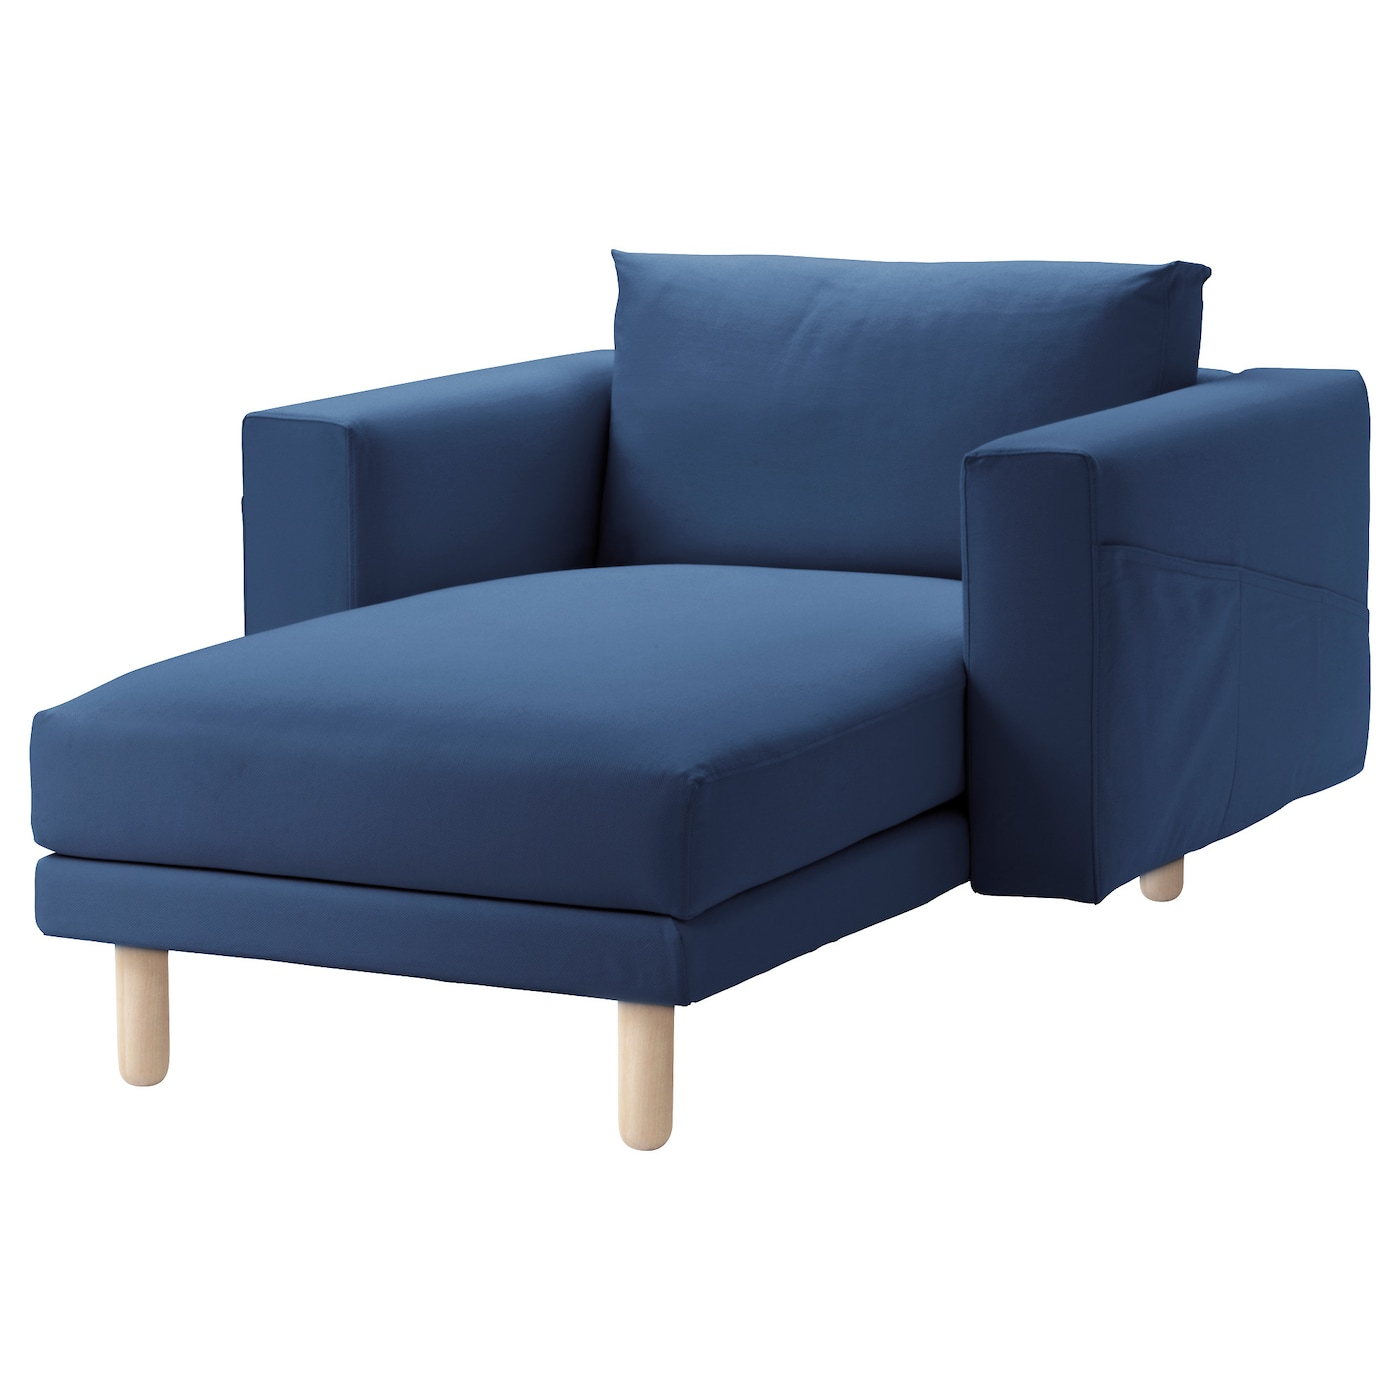 Norsborg chaise longue gr sbo dark blue birch ikea - Chaise en plastique ikea ...